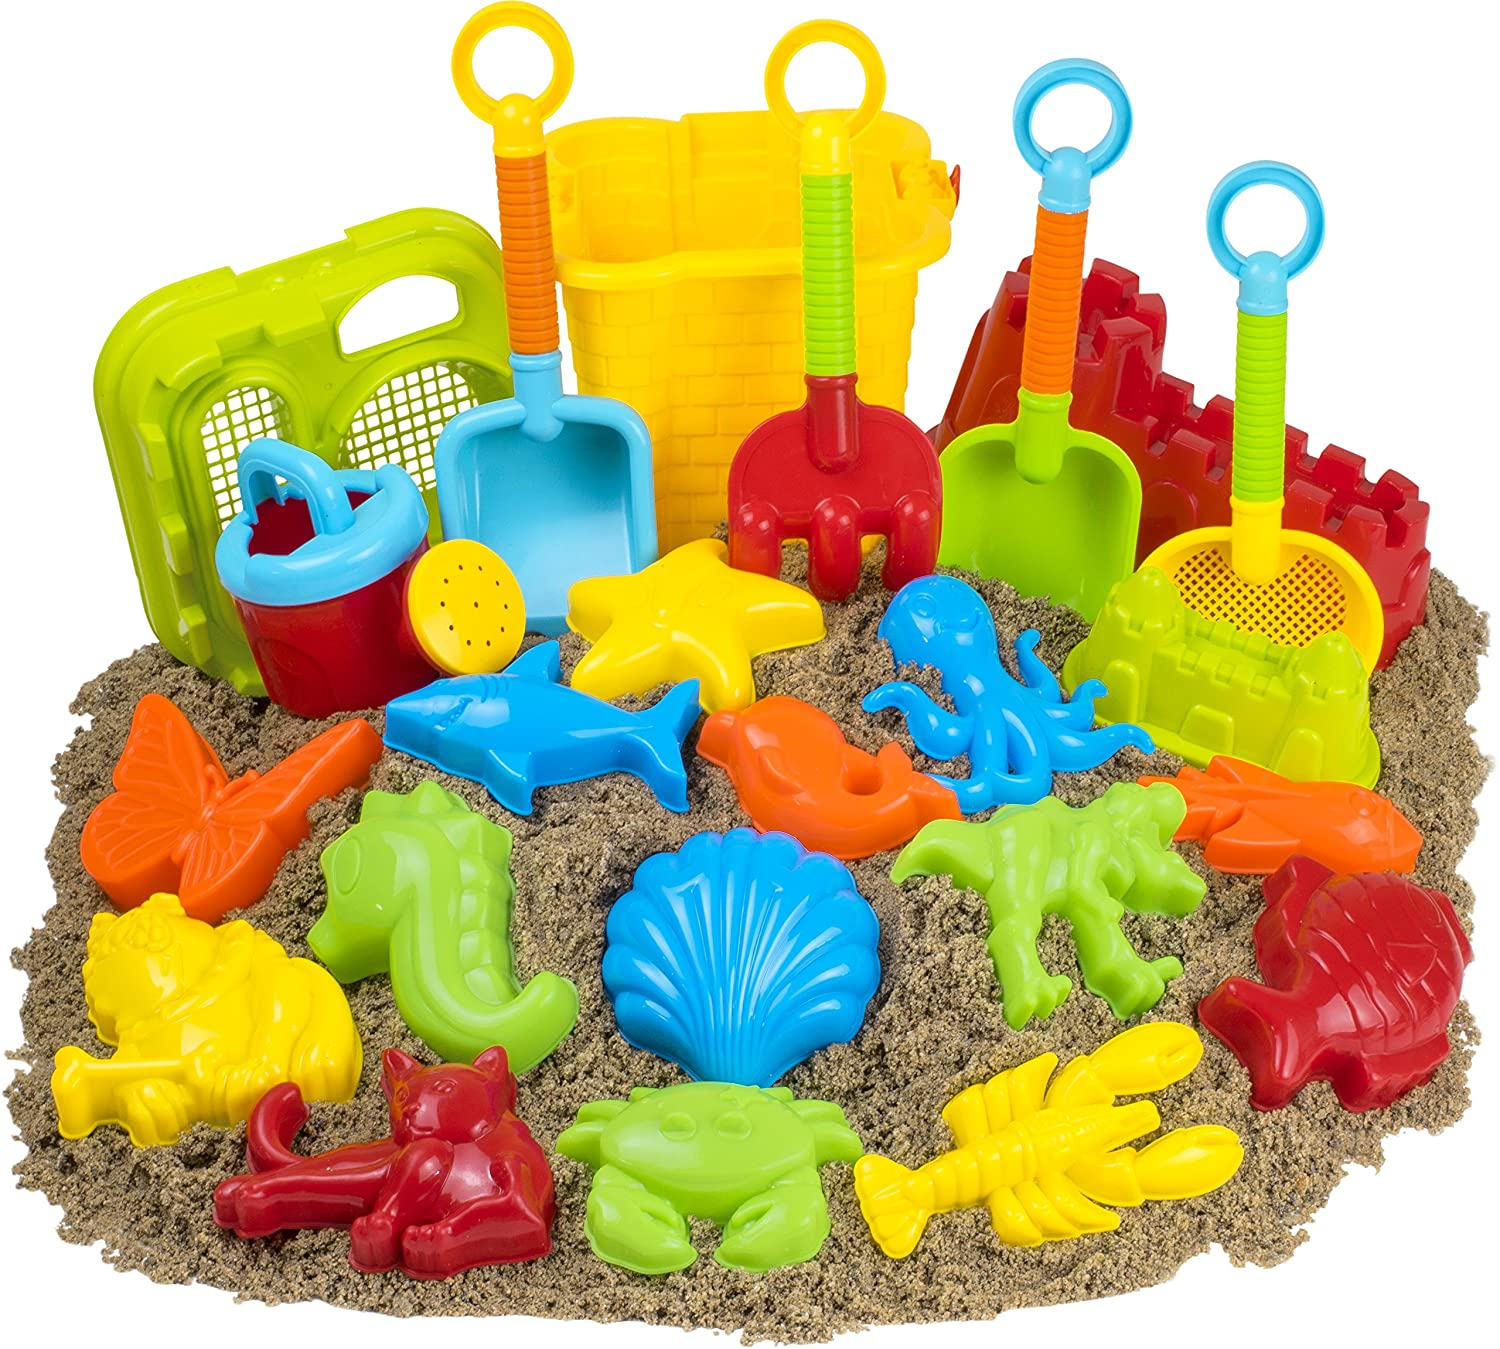 Amazon Sandboxes & Accessories Toys & Games Sandboxes